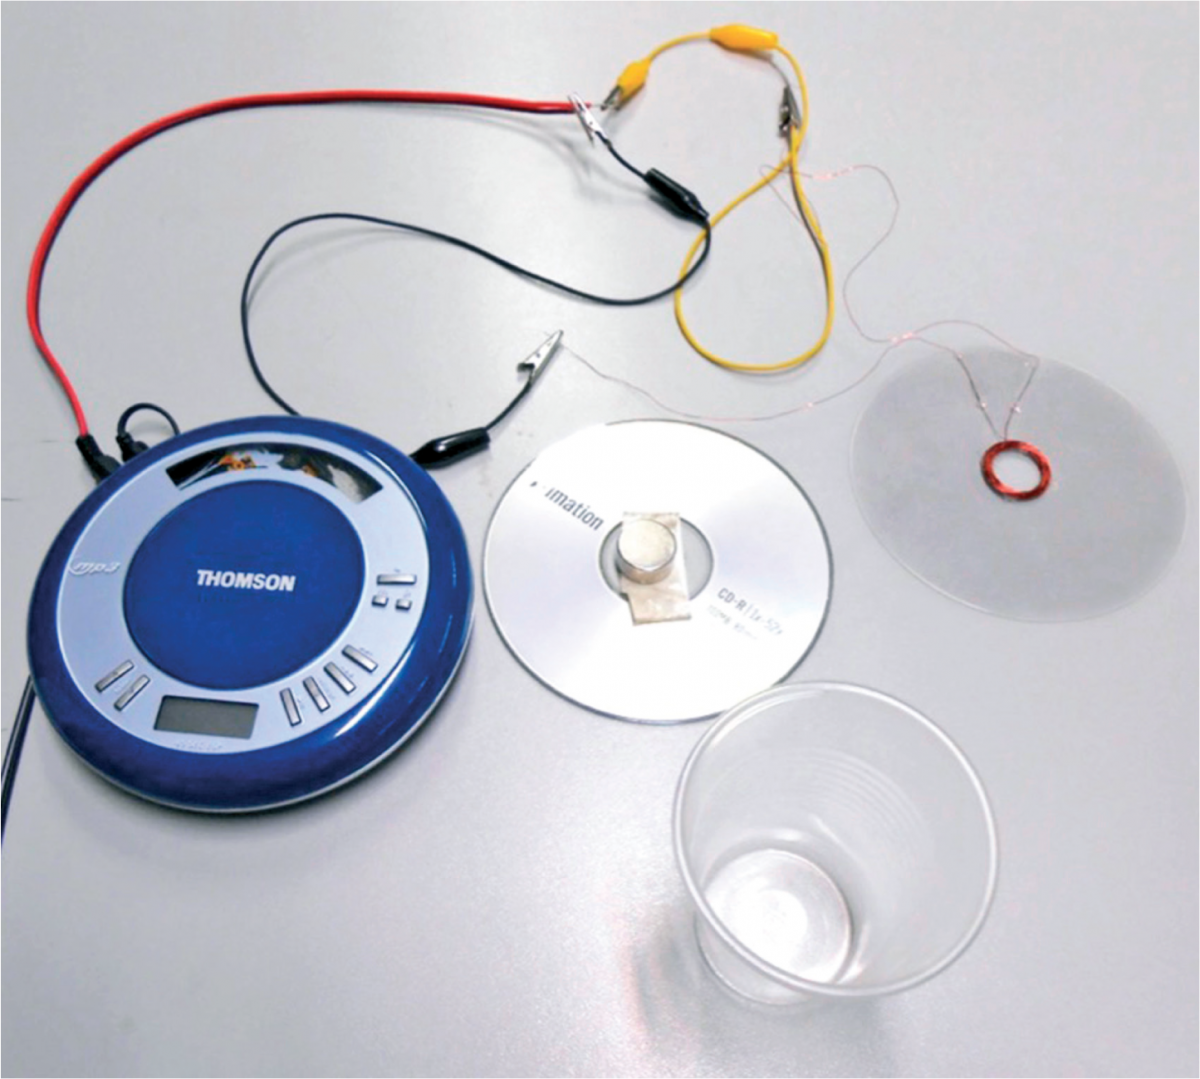 Figure 5: The components of the loudspeaker, using an mp3 player for the audio source